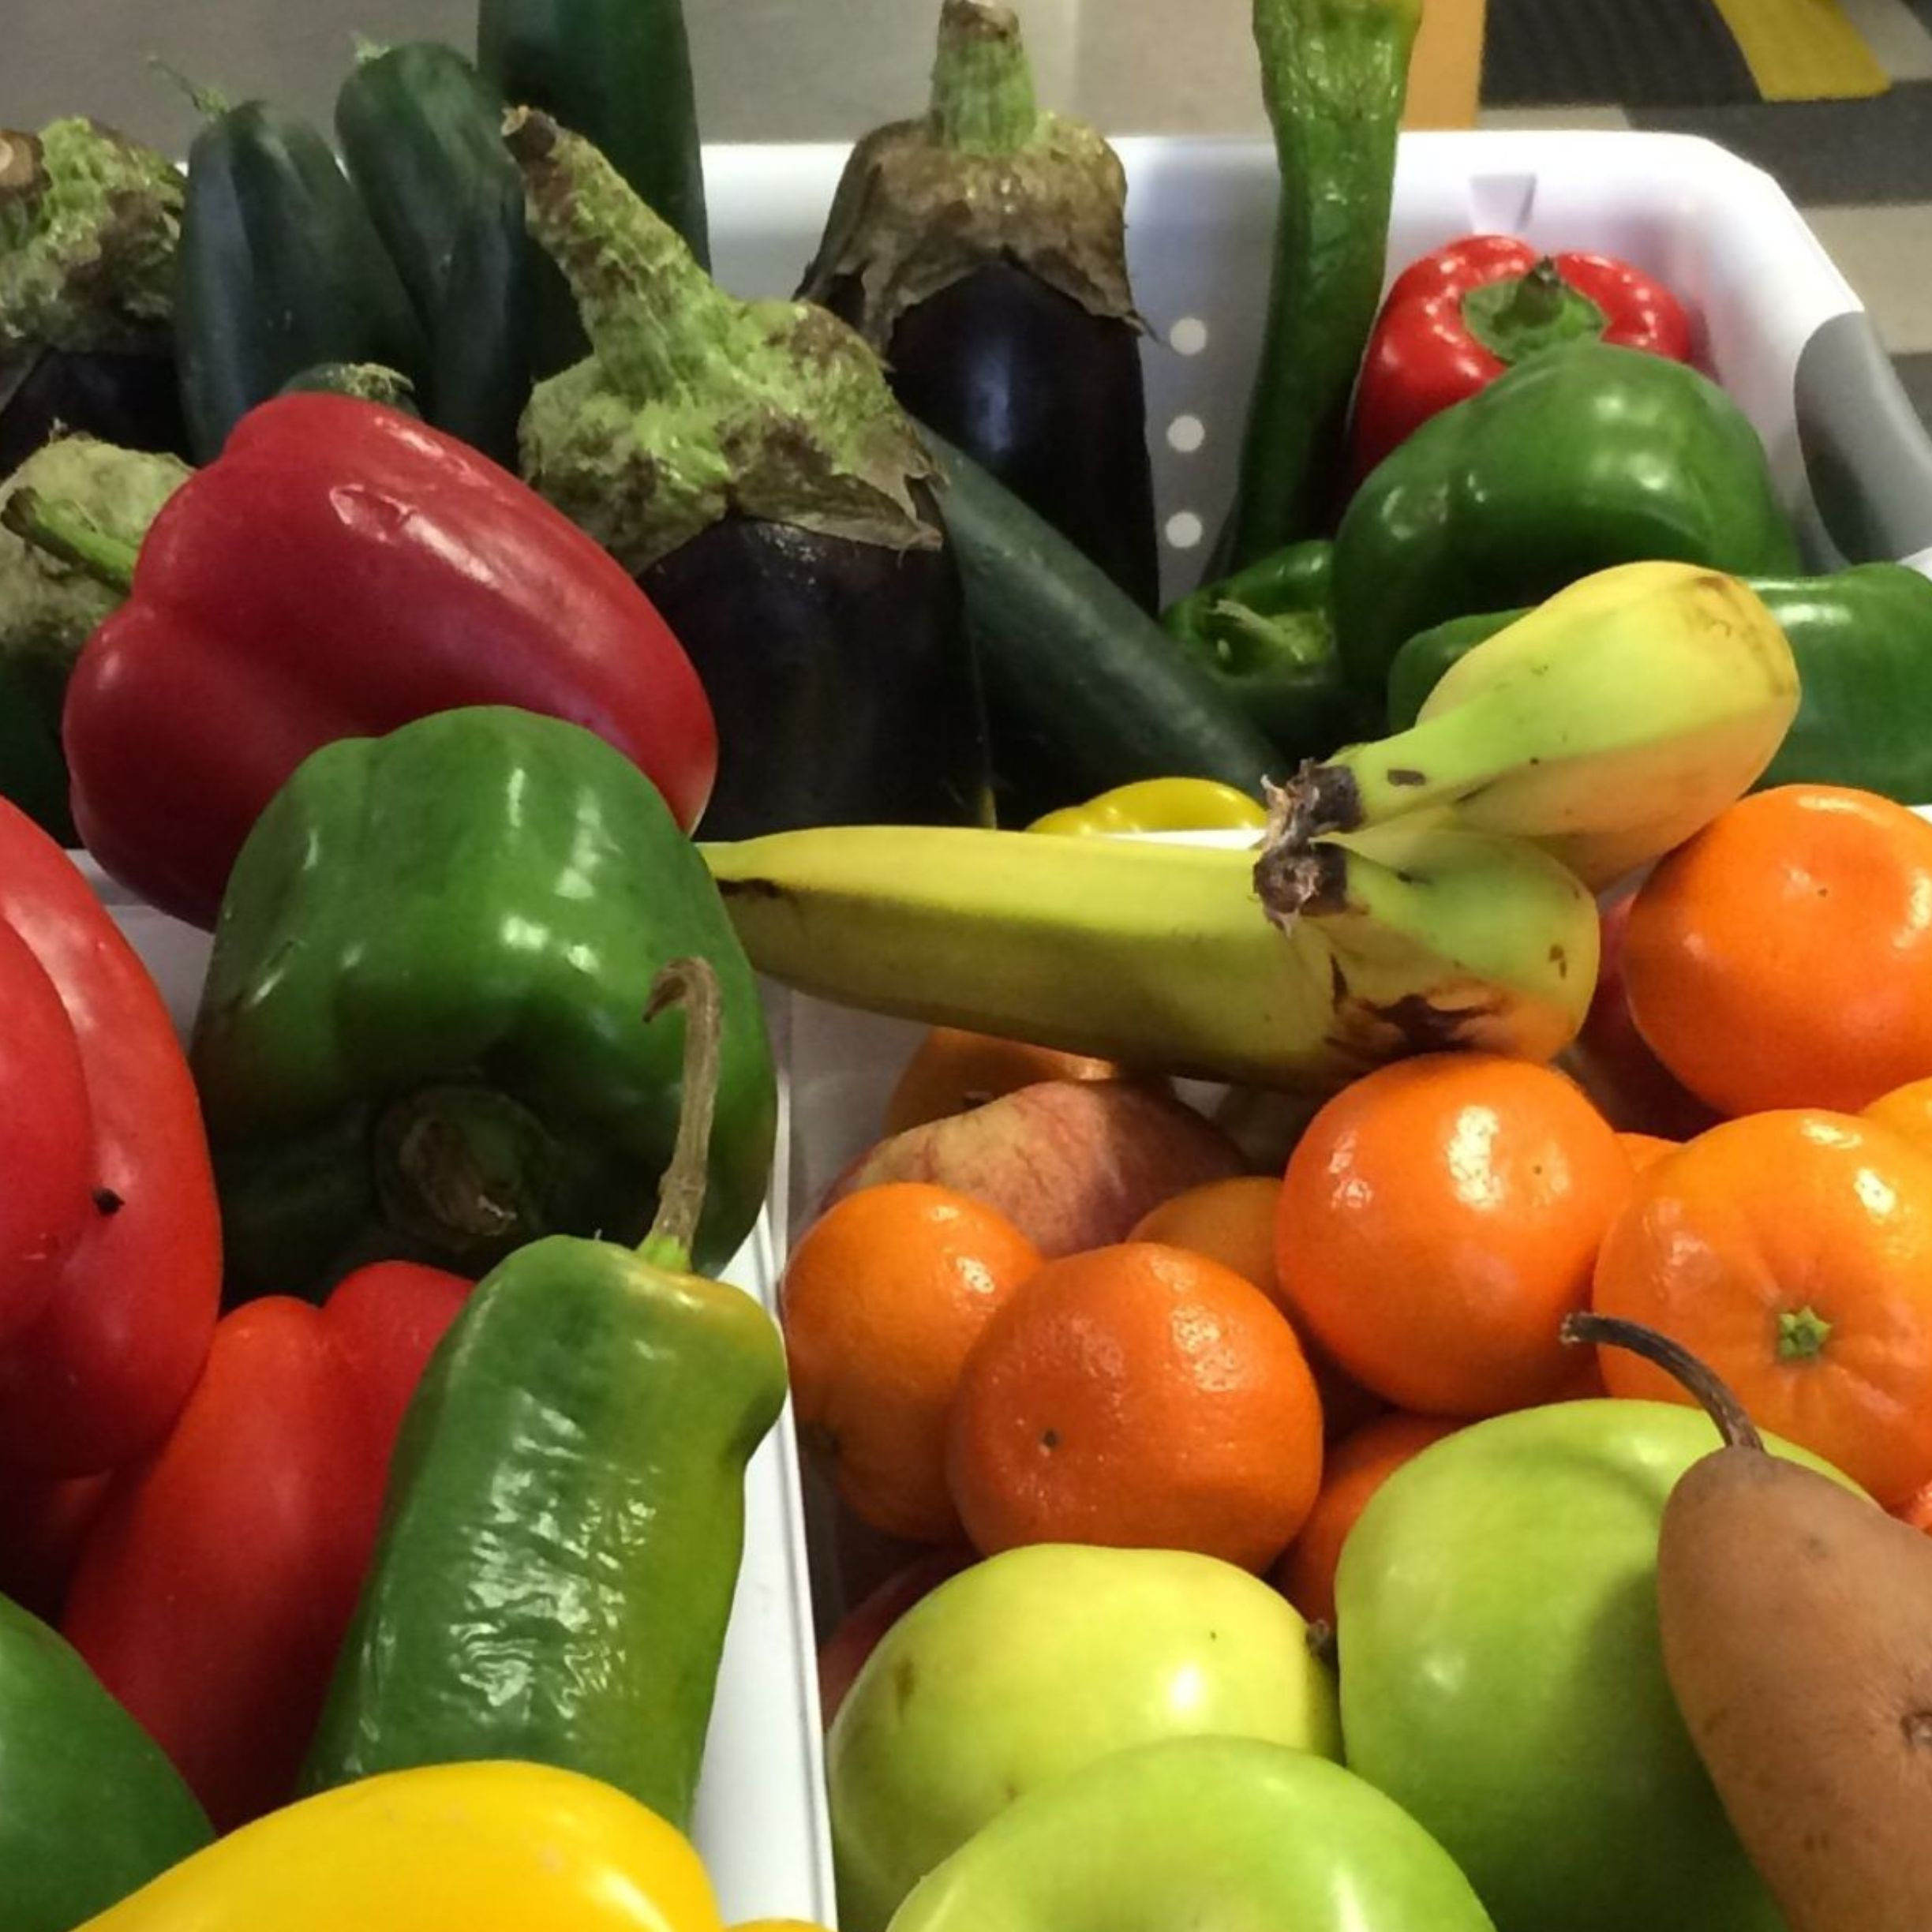 We received and distributed over 7,000 pounds of fresh fruits and vegetables donated by local farms. -